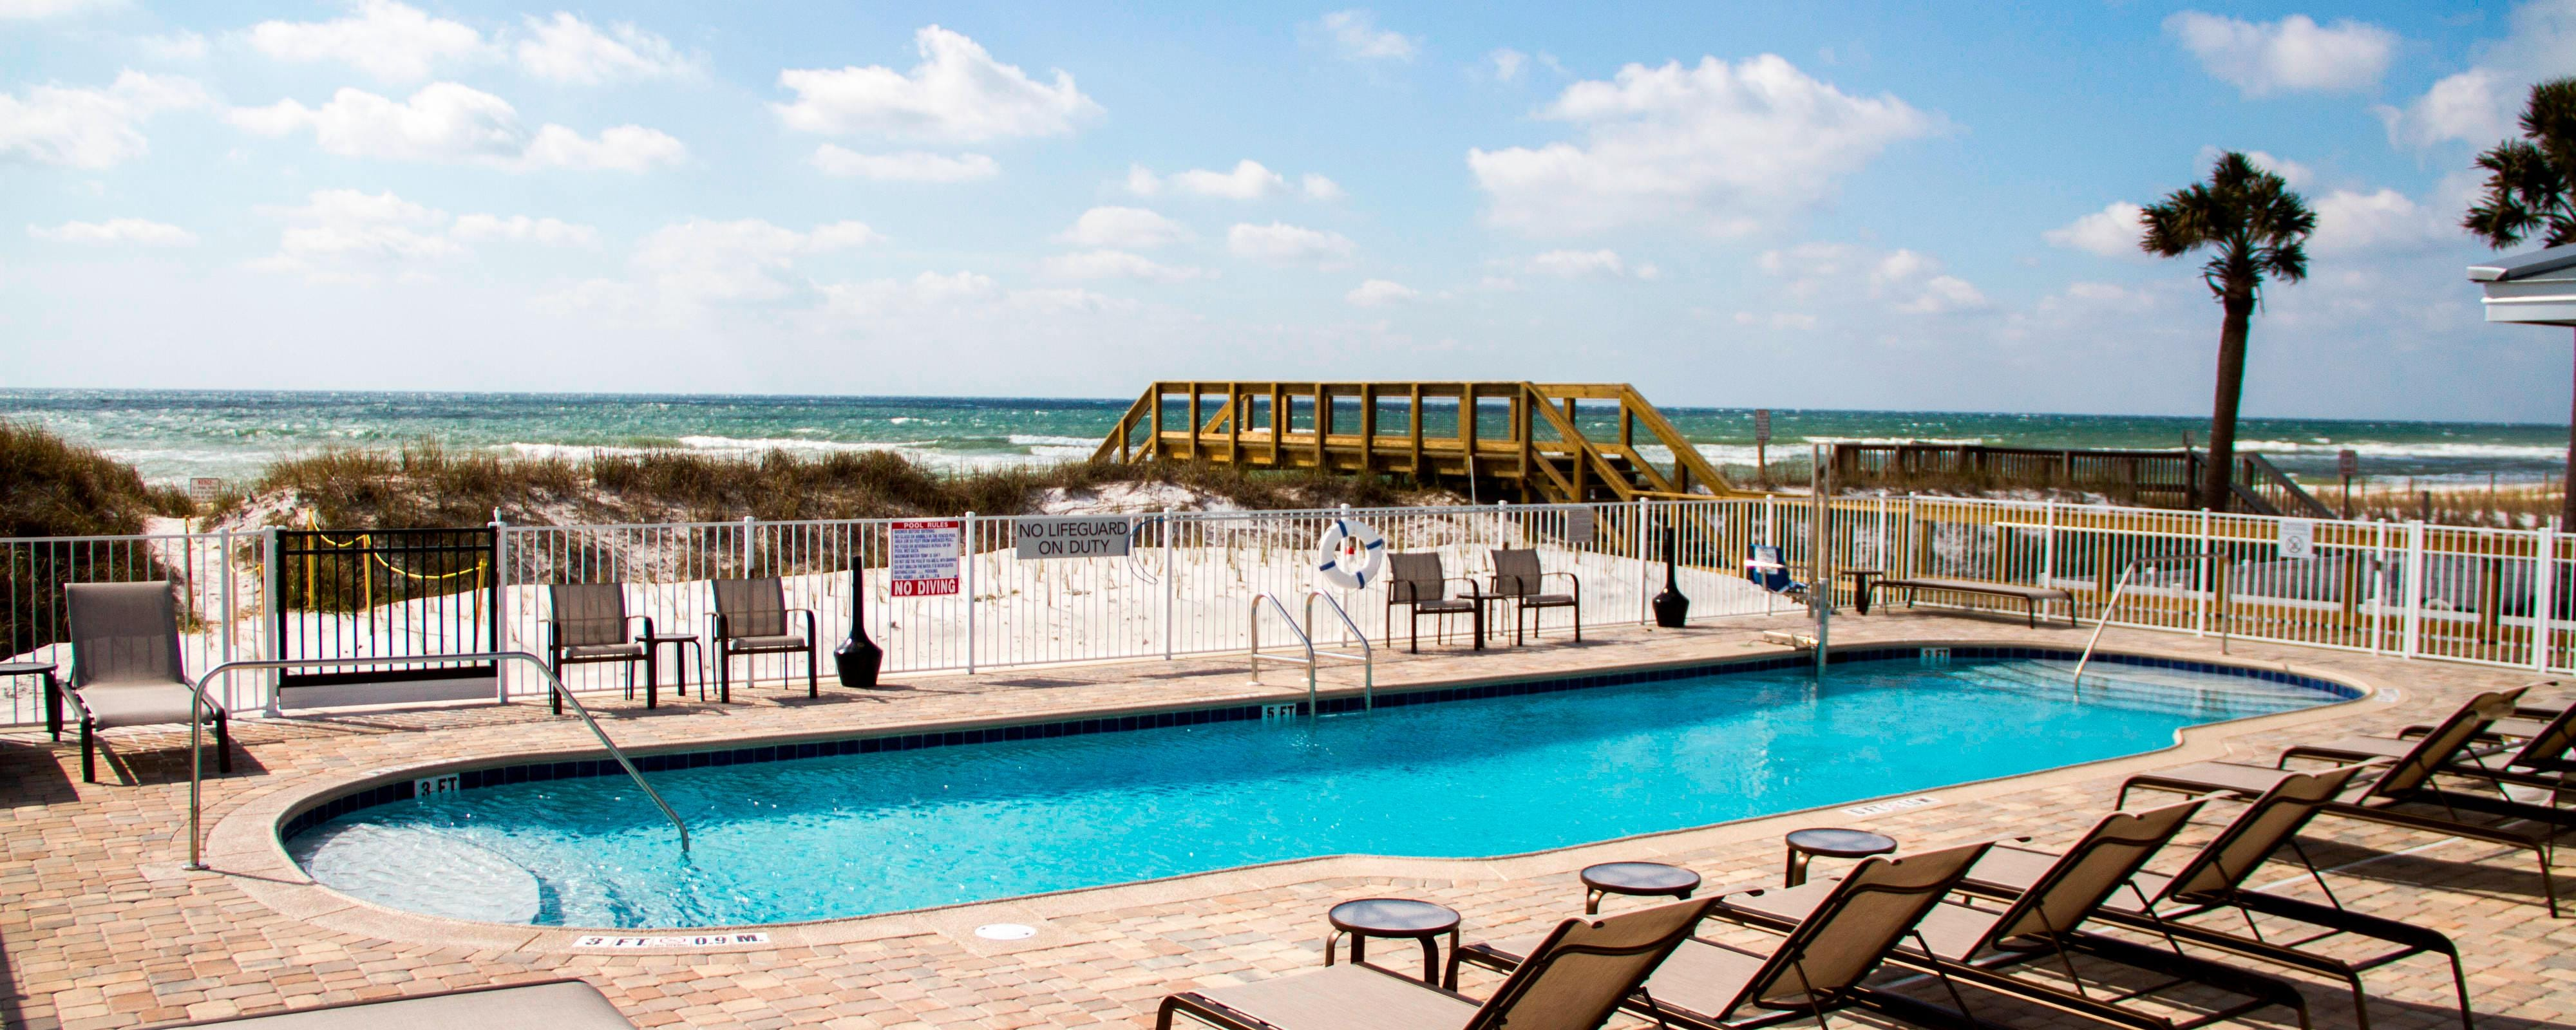 Hotels in Destin, Florida